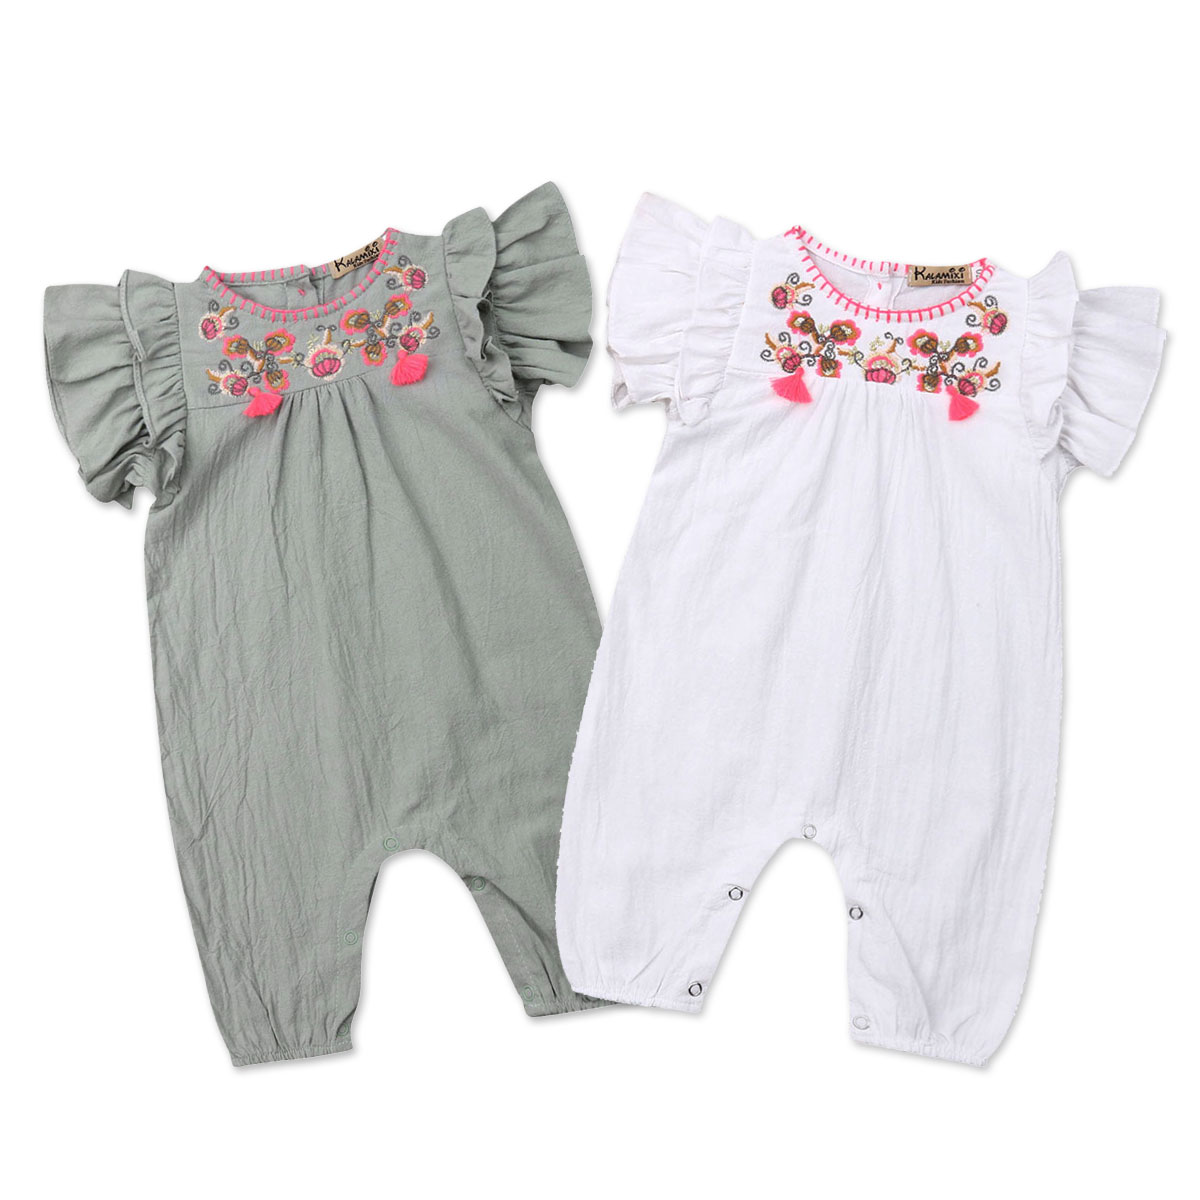 02aa4a0e8096 Summer Flower Baby Girls Clothes Newborn Infant Baby Ruffles Rompers  Jumpsuit Playsuit Baby Girls Costumes